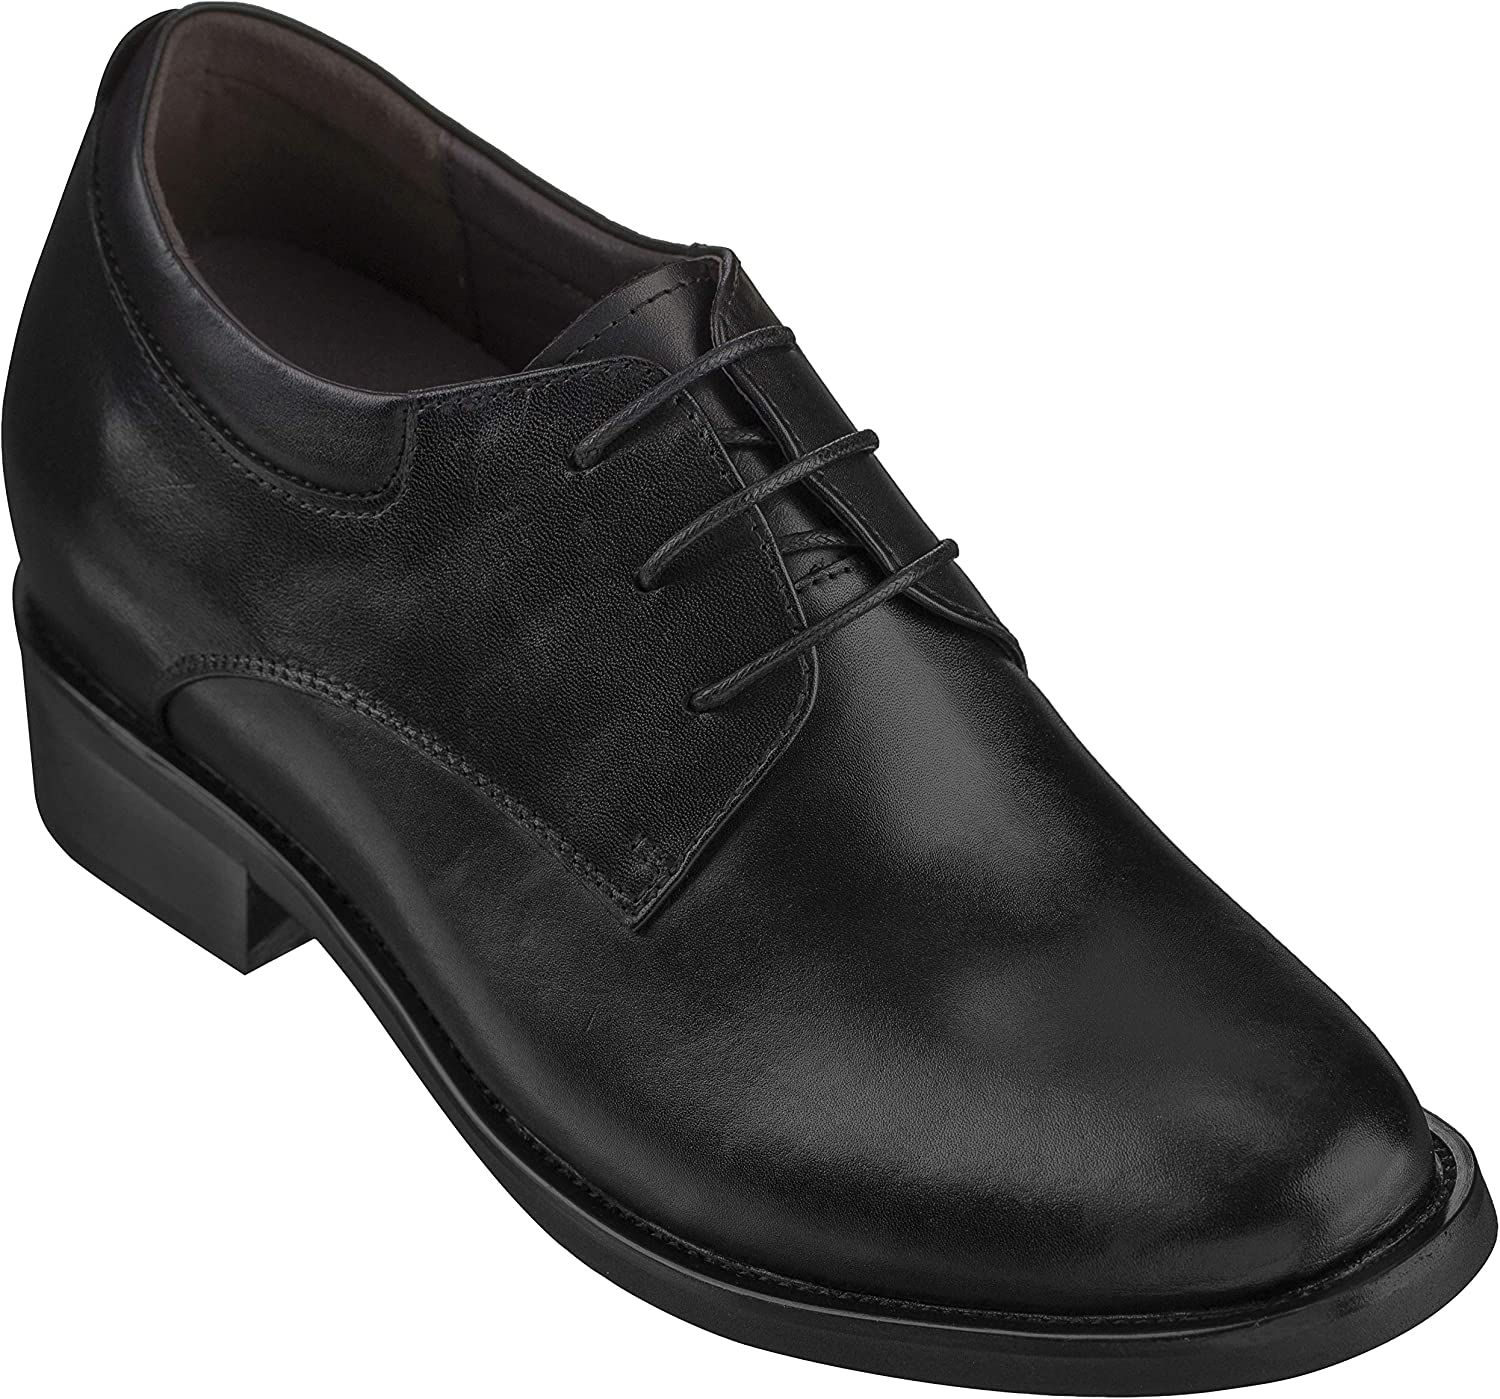 Calden Men's Invisible Height Increasing Elevator shoes - Black Leather Lace-up Lightweight Formal Oxfords - 4 Inches Taller - K59510